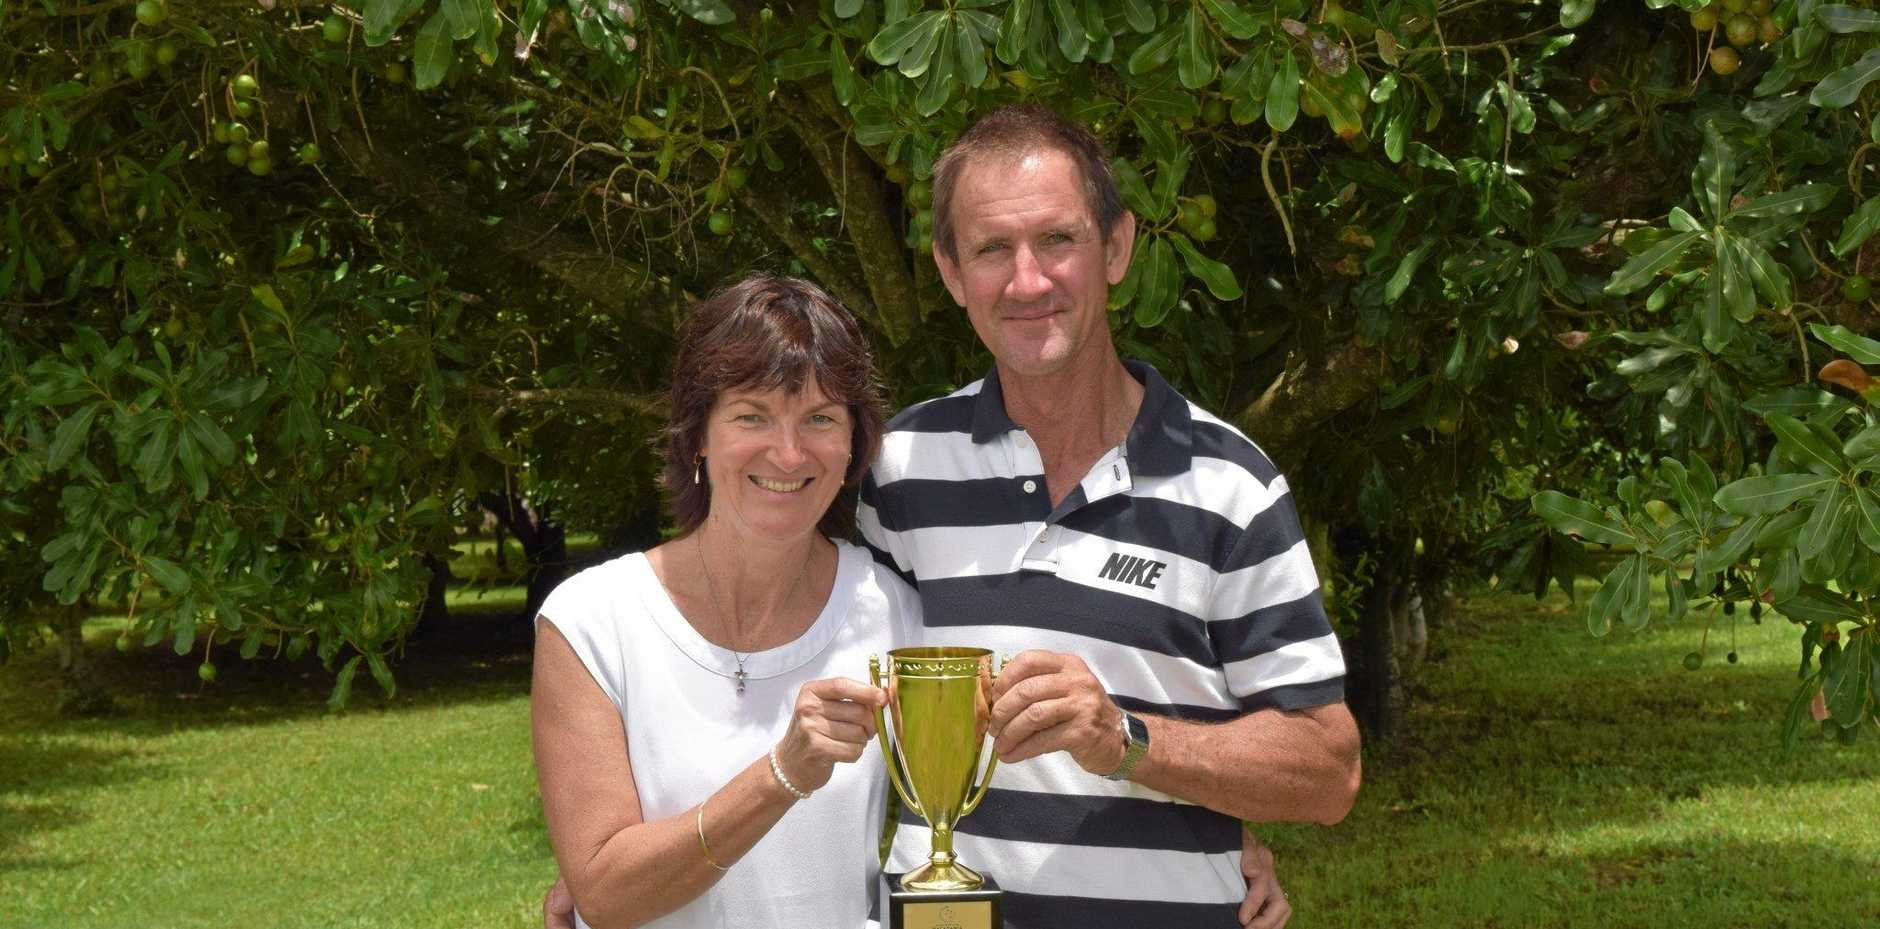 Upper Duroby's David and Sharon Wardrop with their trophy.